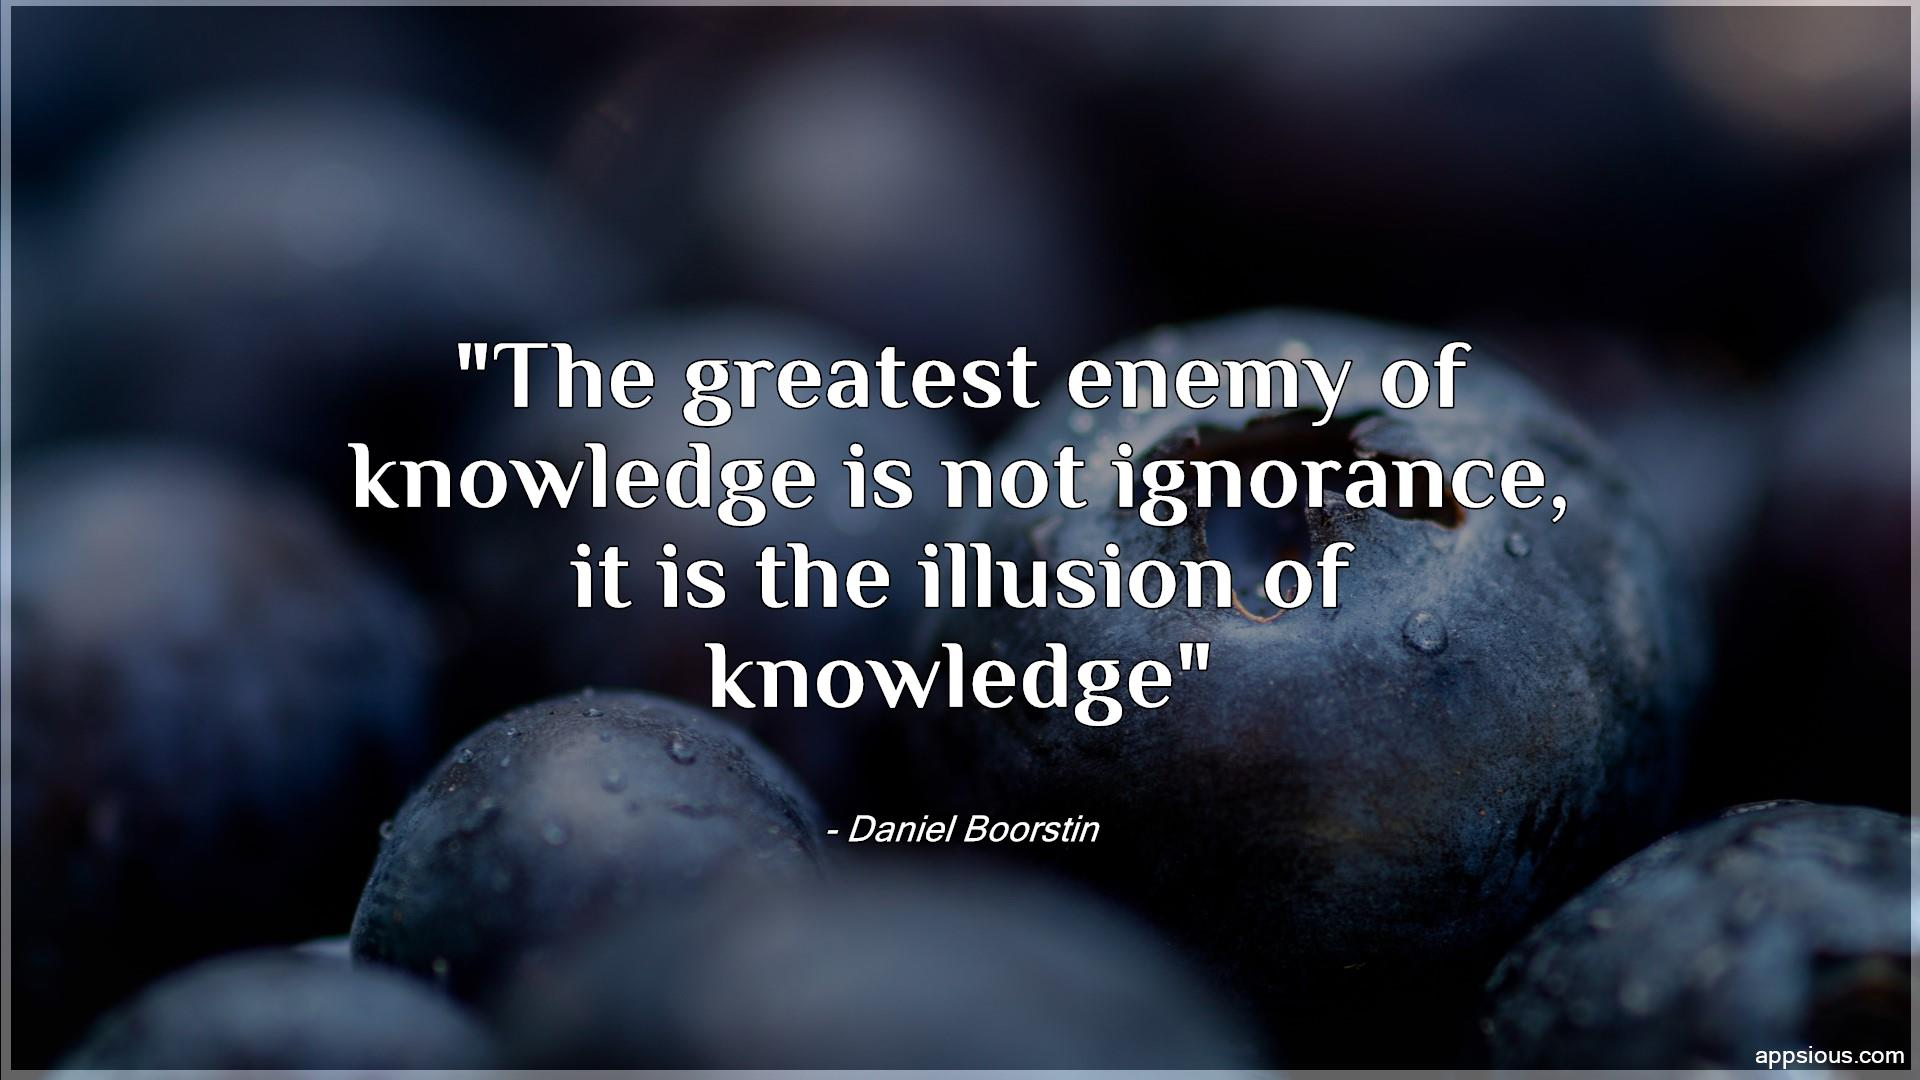 The greatest enemy of knowledge is not ignorance, it is the illusion of knowledge